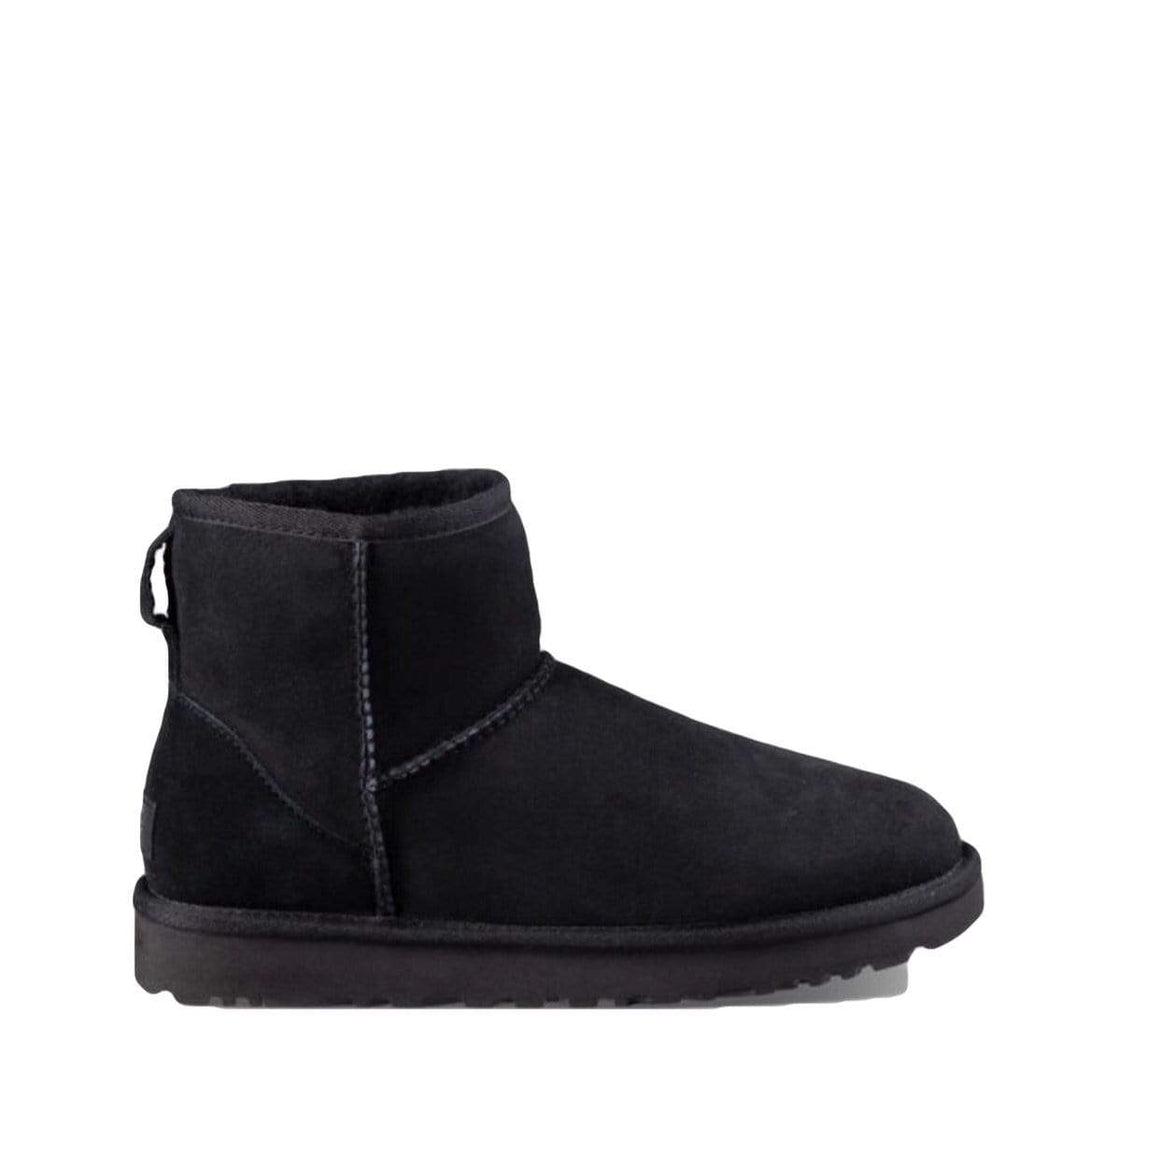 UGG 1016222 - Woman's Classic Mini II Boot - Black Winter Boots UGG